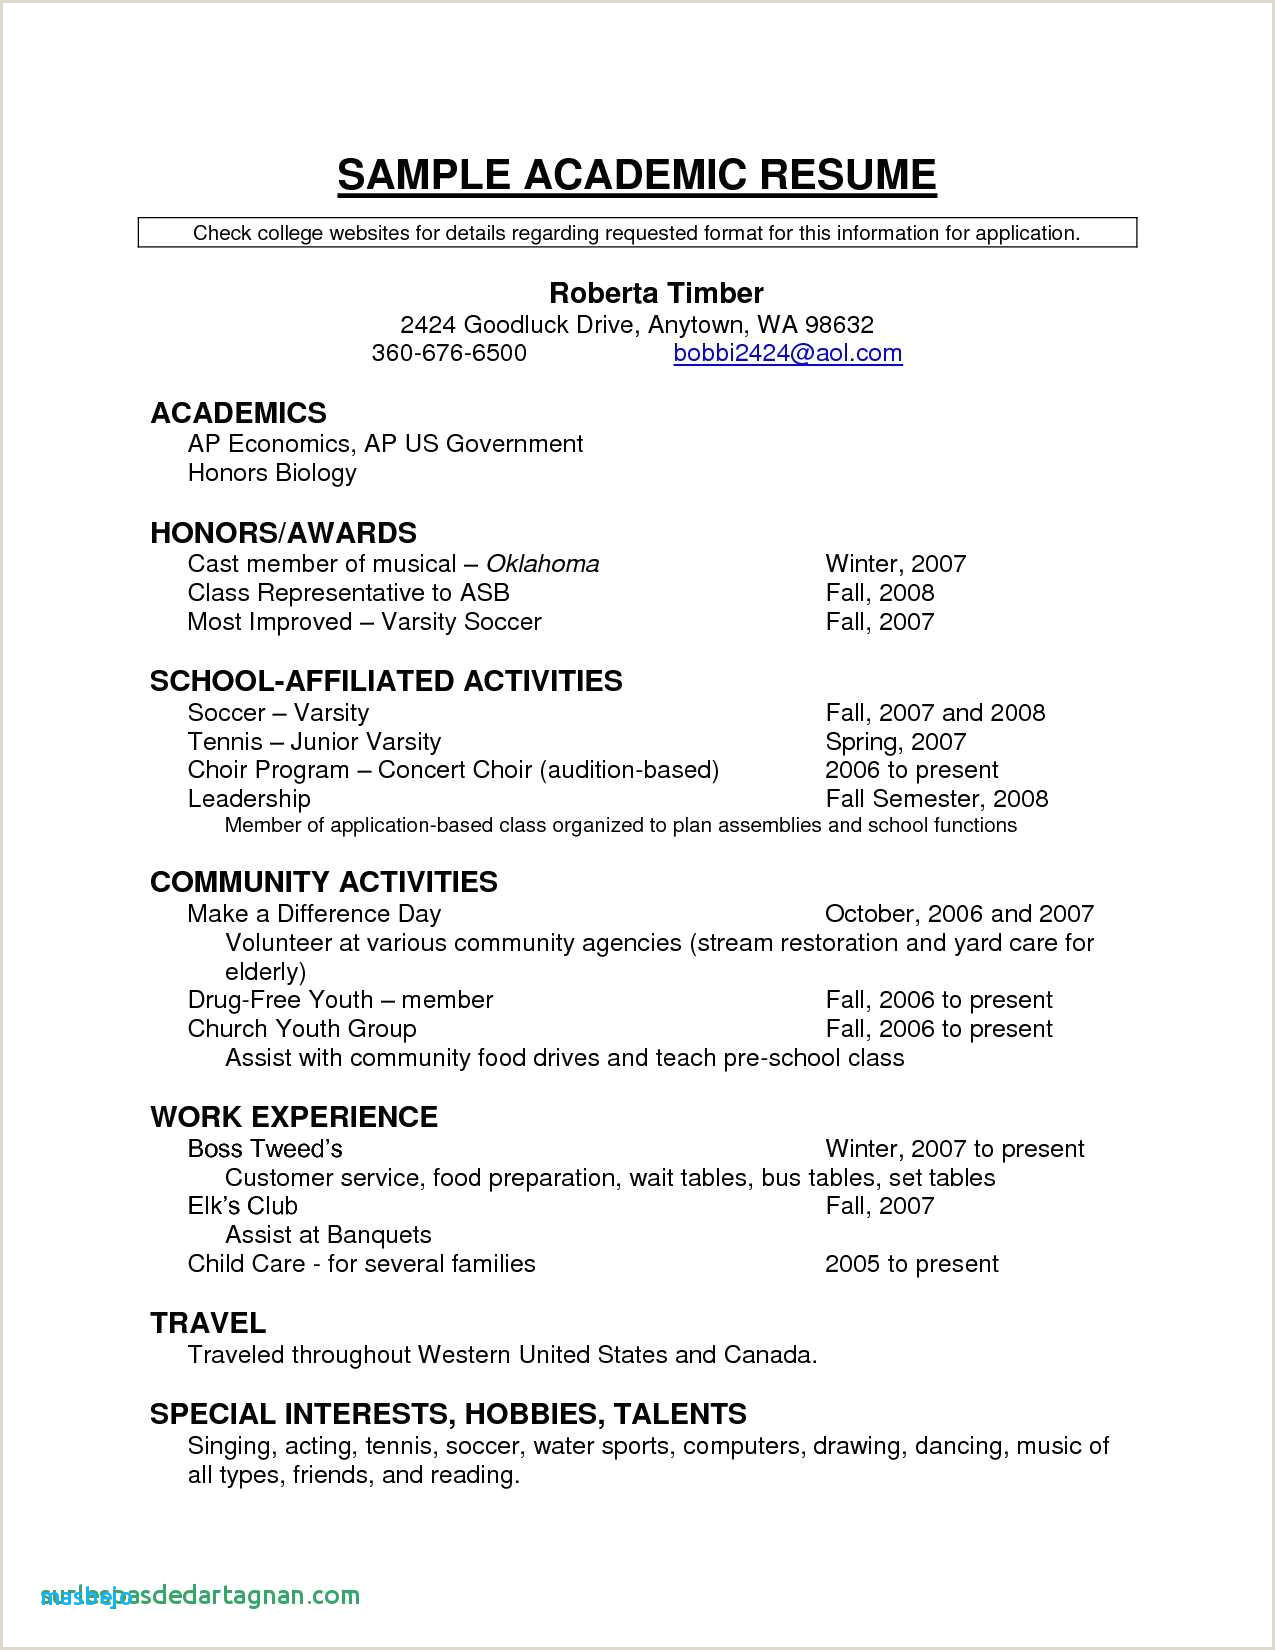 Resume format for Canada Job 33 New Audition Cover Letter Sample S